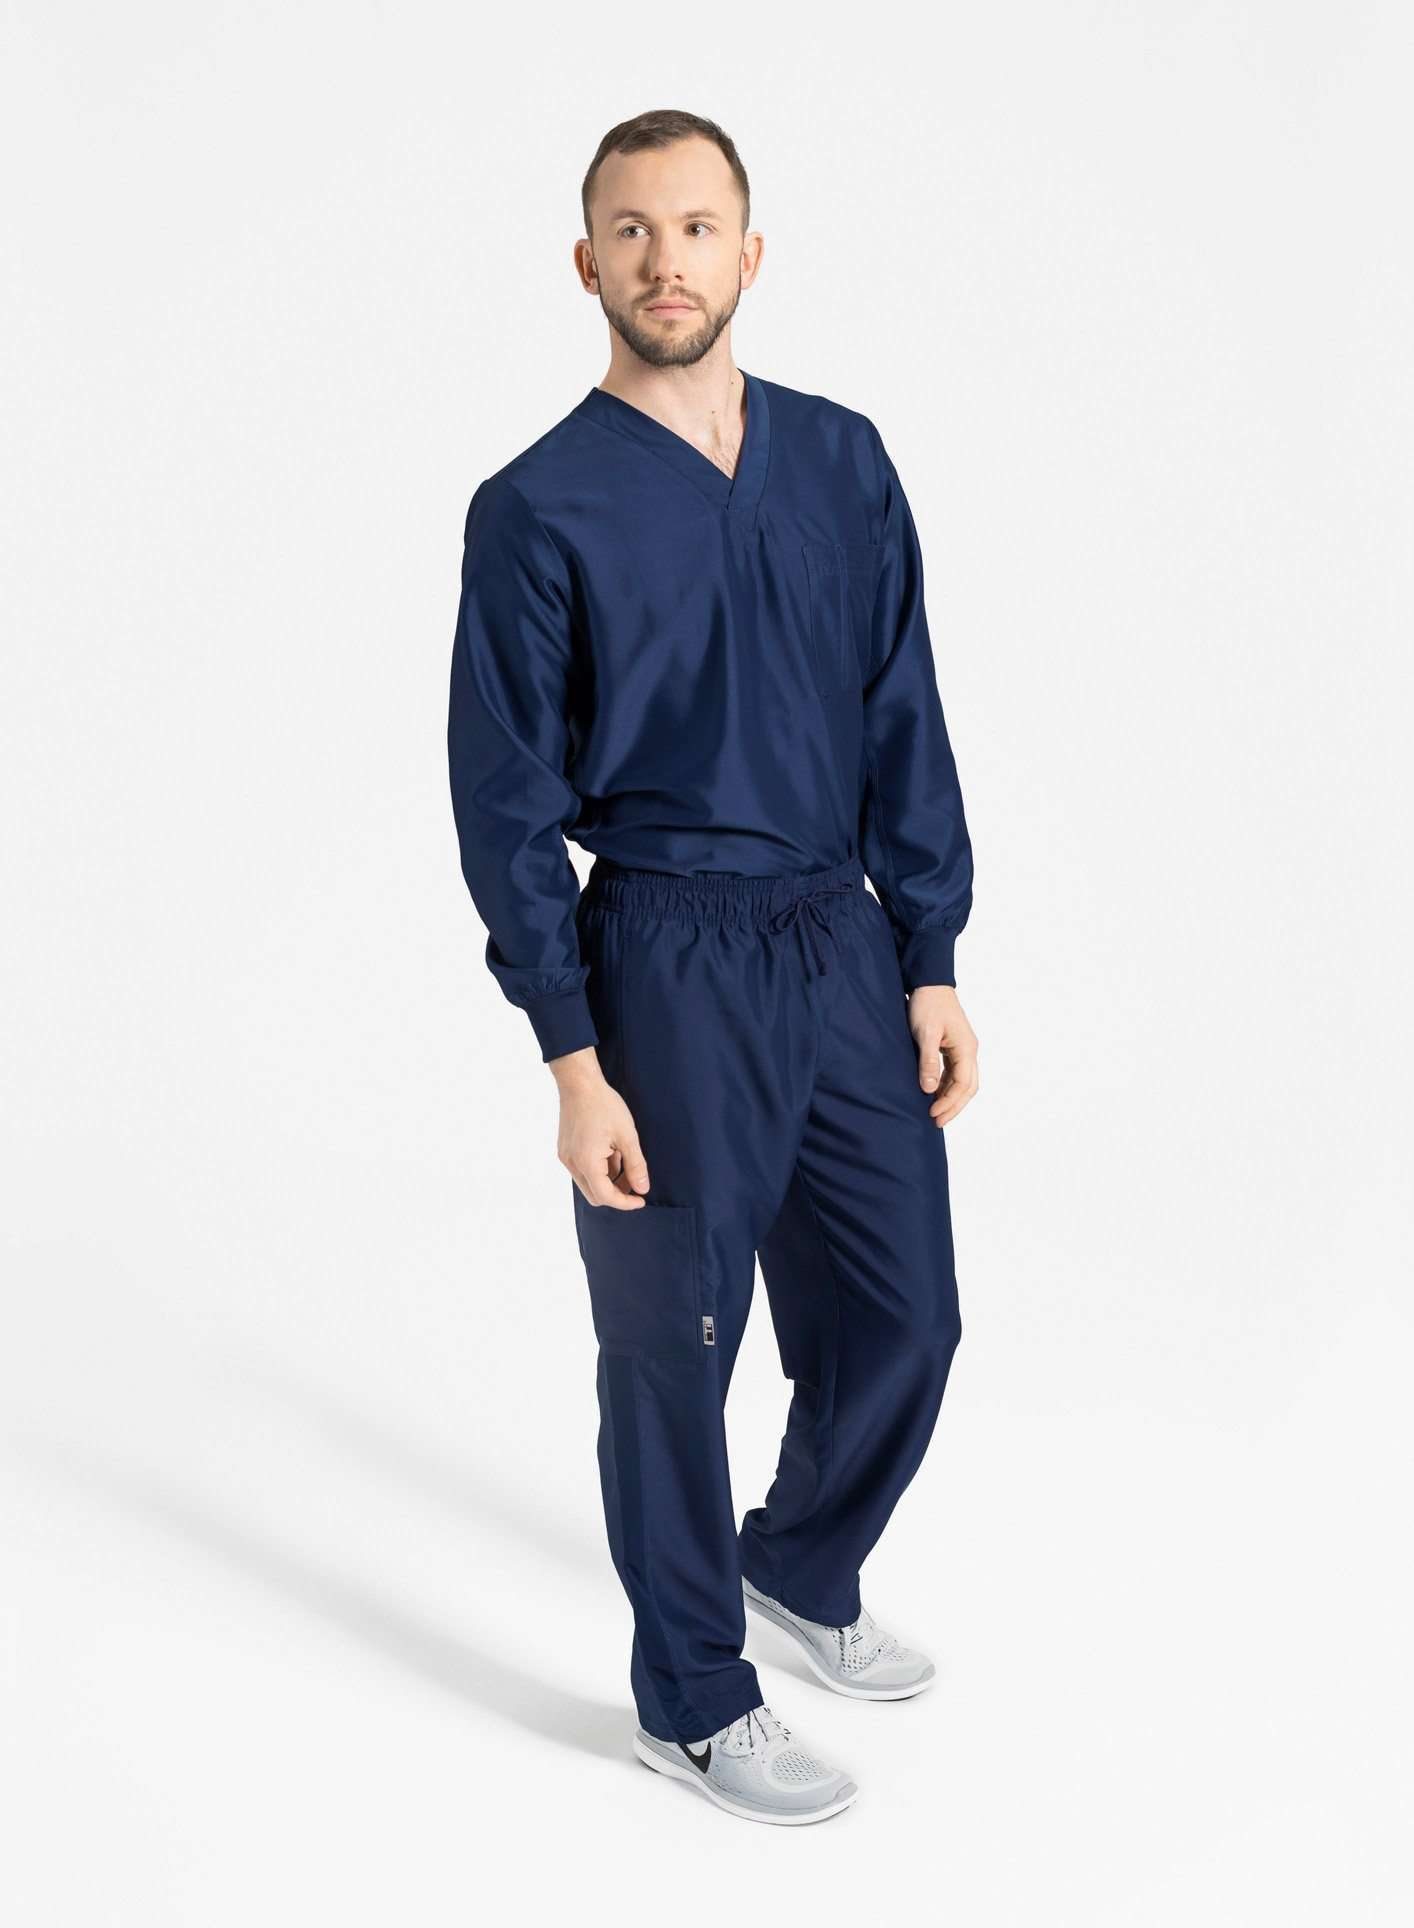 mens Elements long sleeve one pocket scrub top and pants navy blue